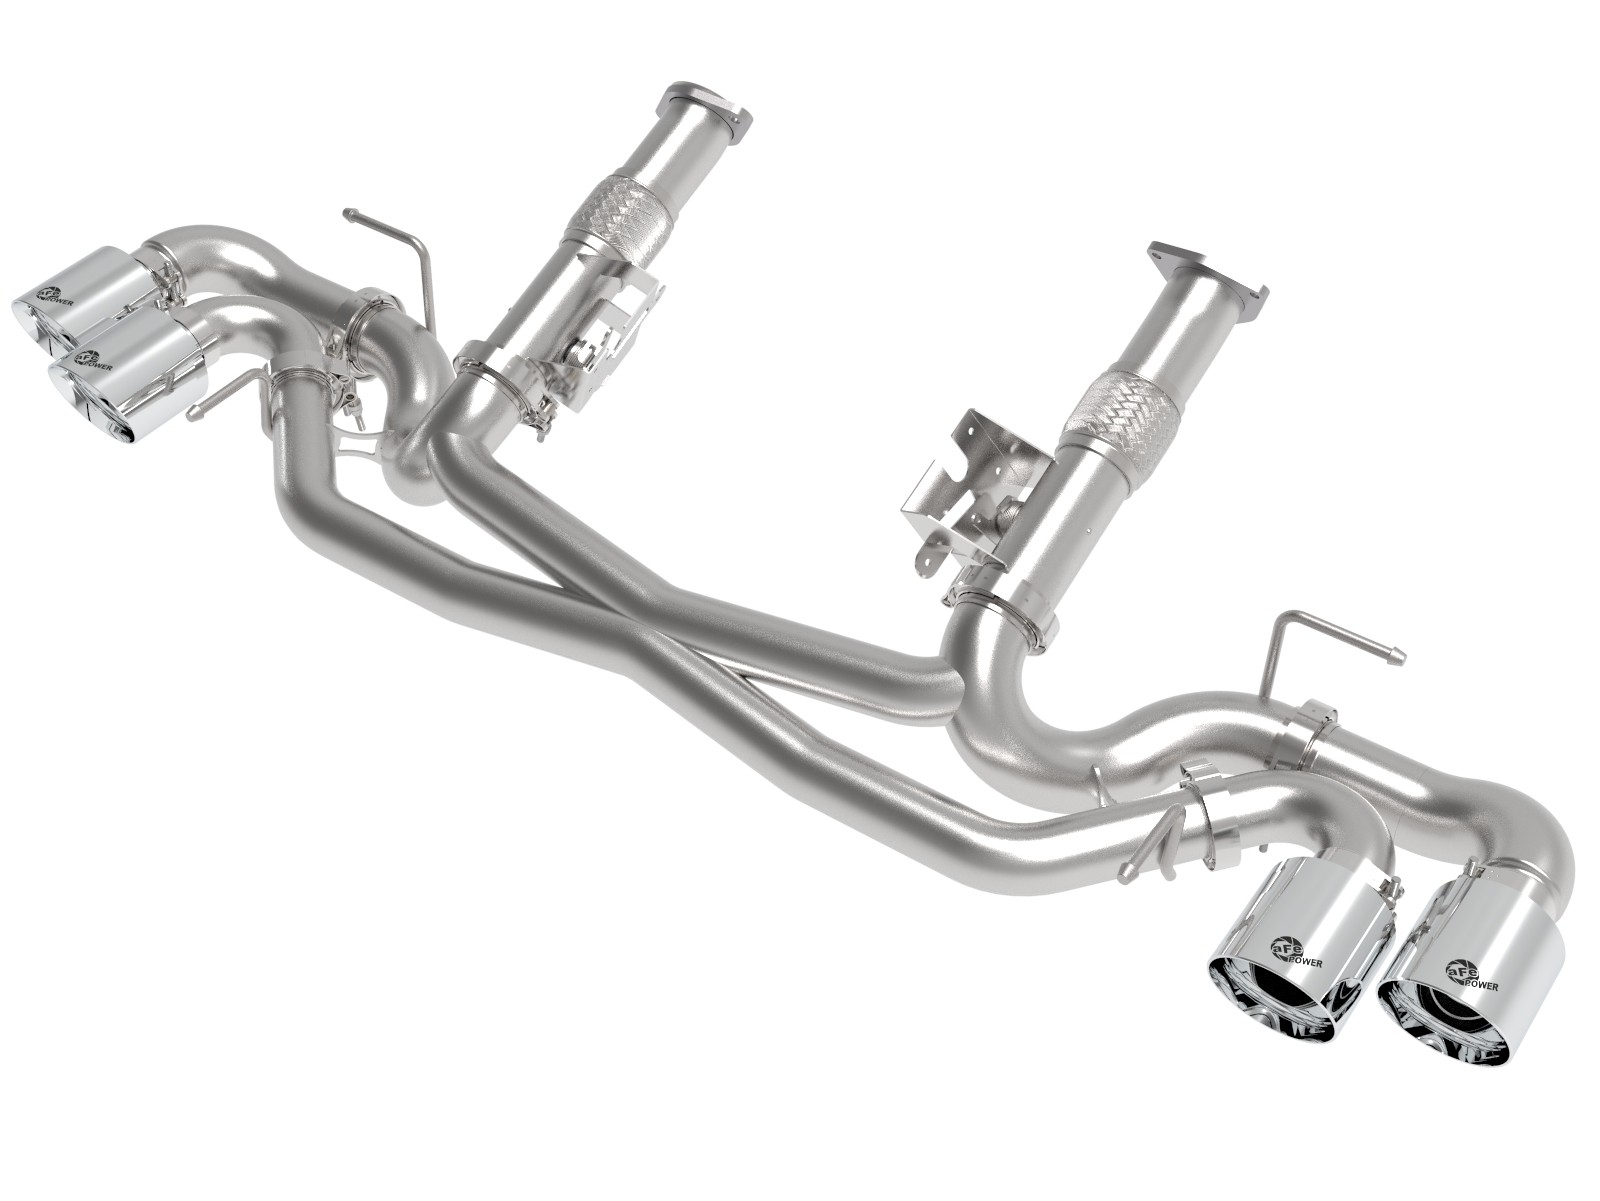 "2020+ C8 Corvette aFe Power MACH Force-Xp 3"" to 2-1/2"" 304 Stainless Muffler-Delete Cat-Back Exhaust System w/Polished Tips"